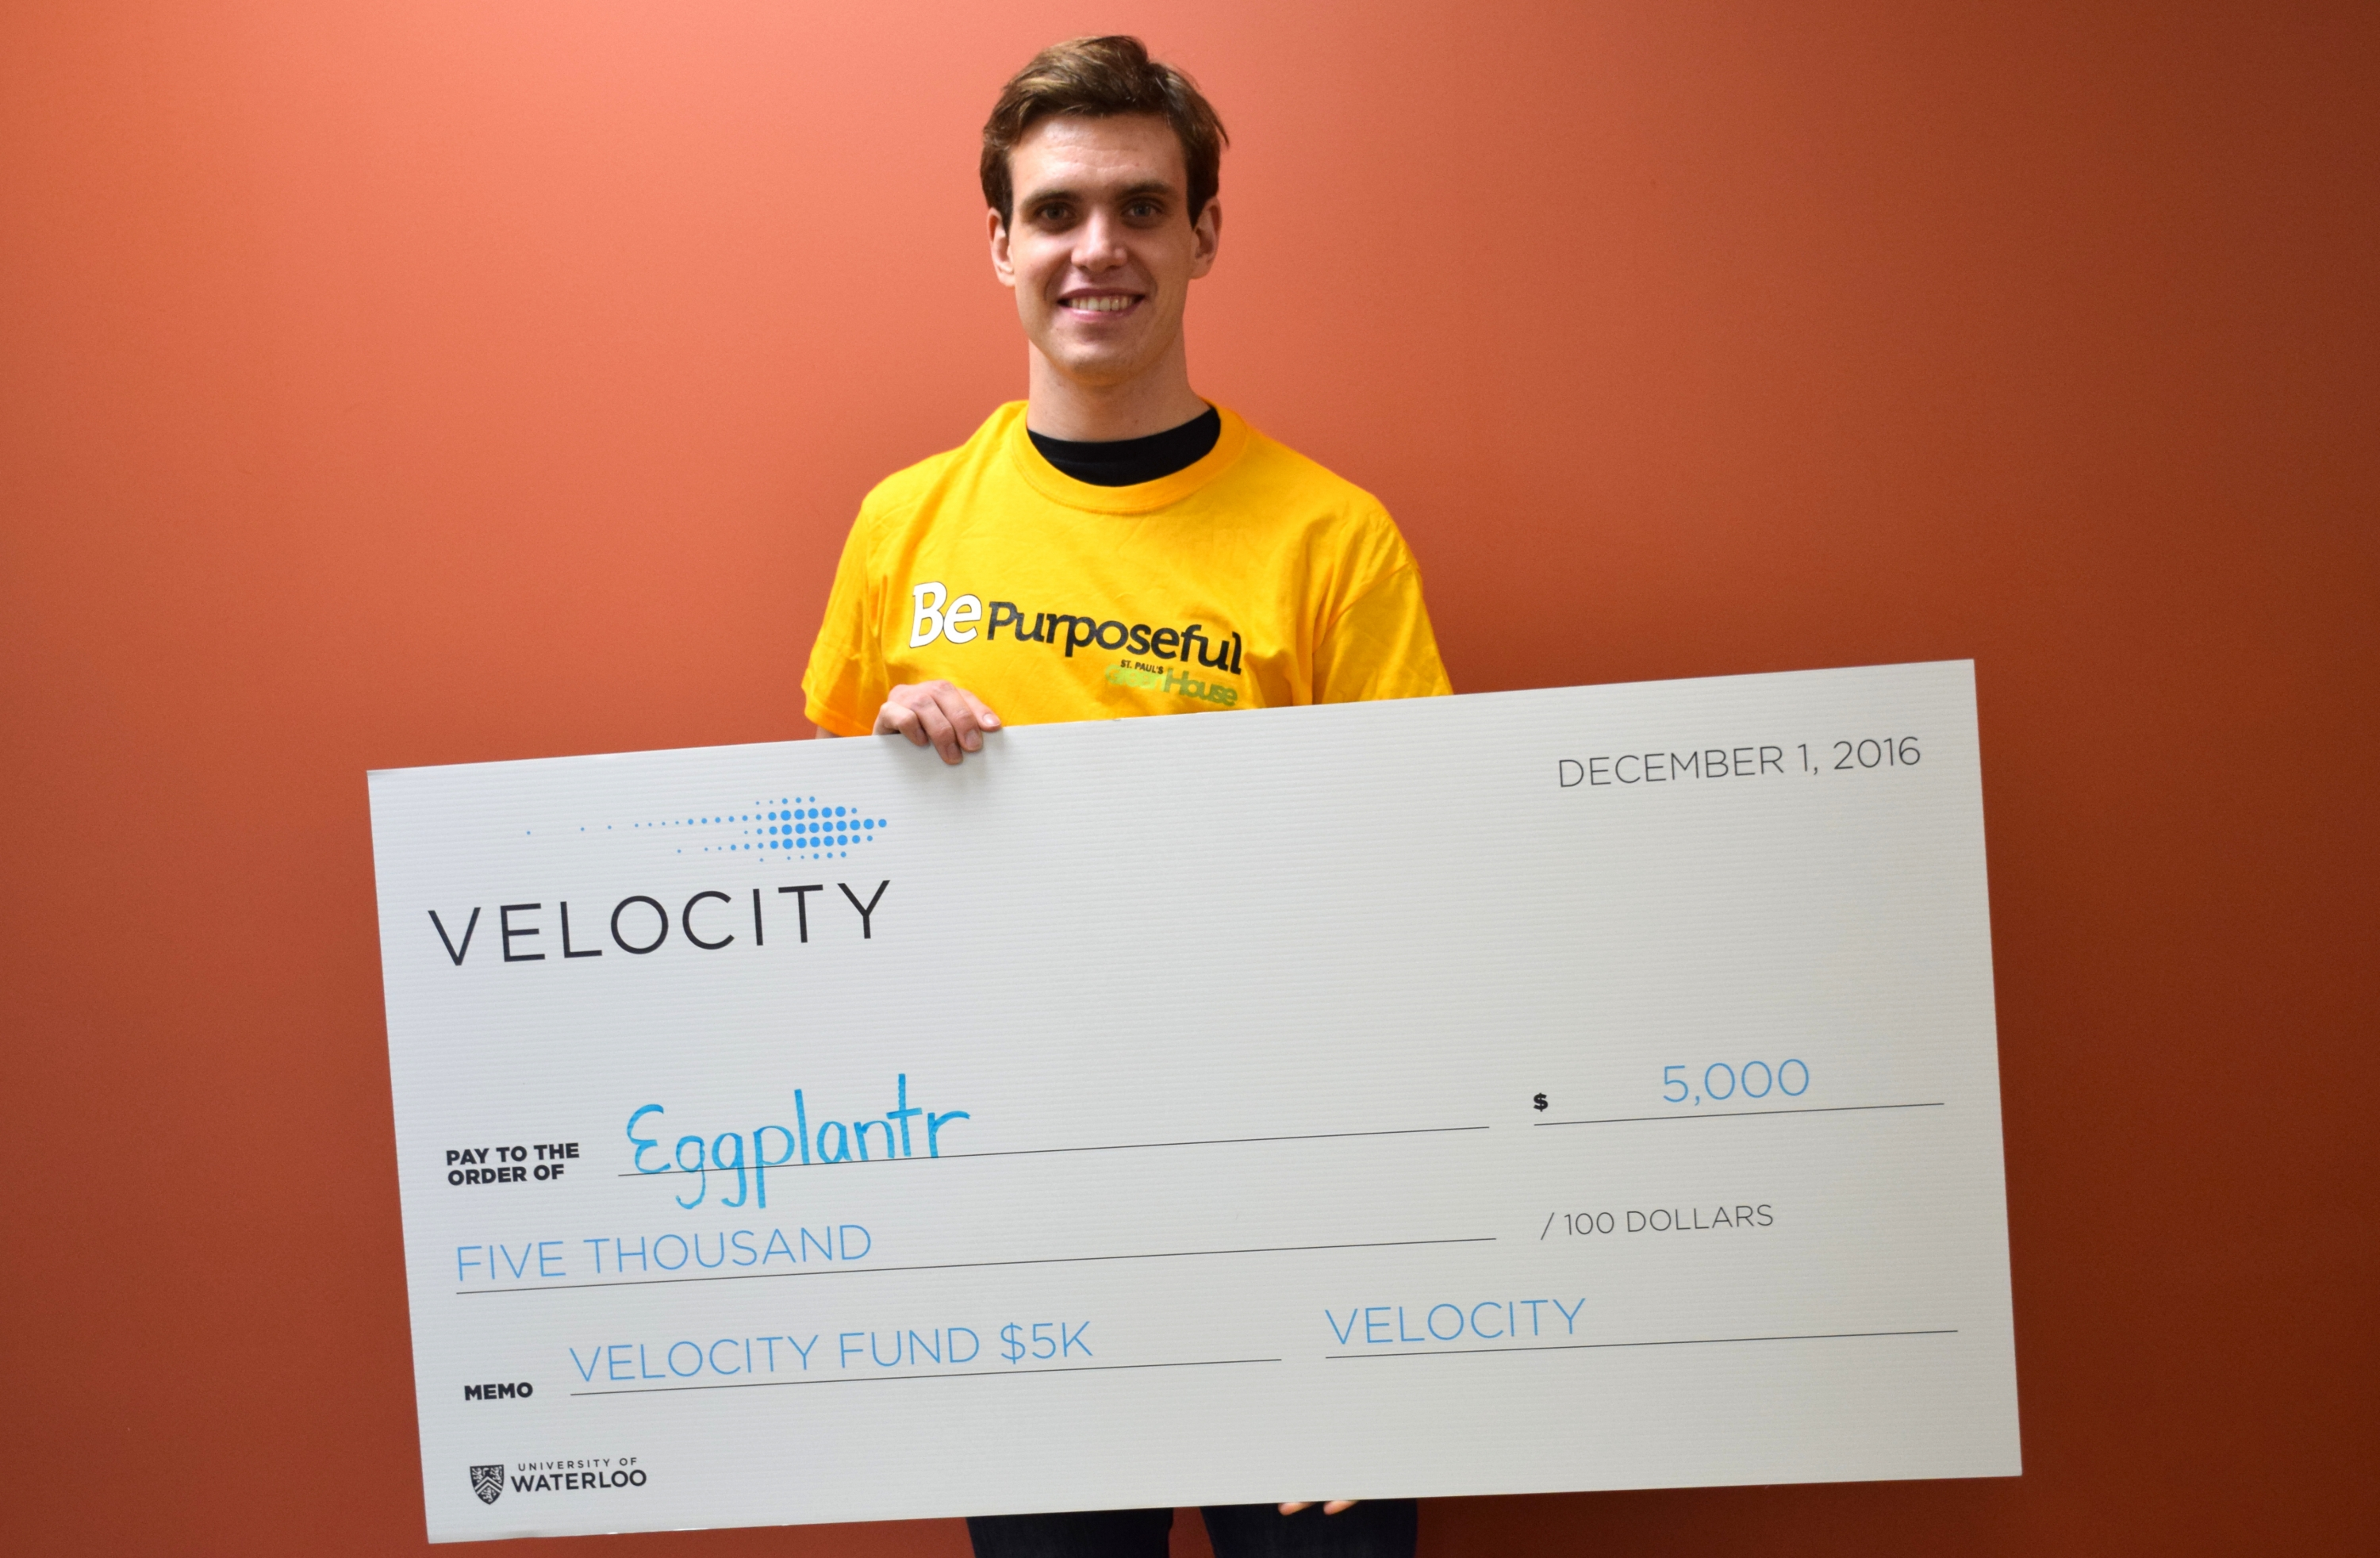 Michael Wideman with Velocity mock cheque